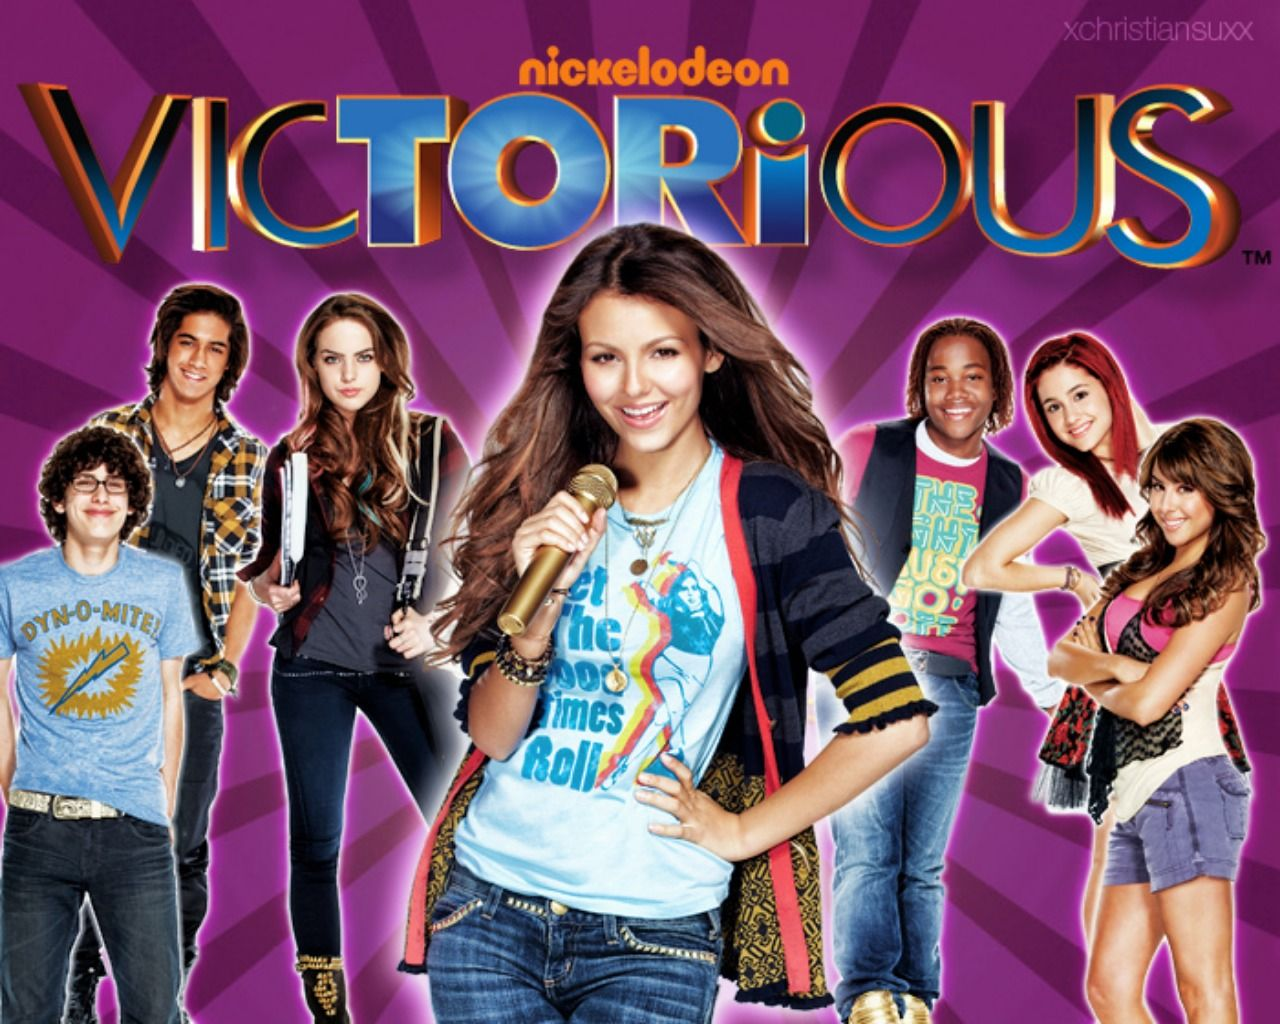 1280x1024 Best 70+ Victorious Wallpaper on HipWallpaper | Victorious ...